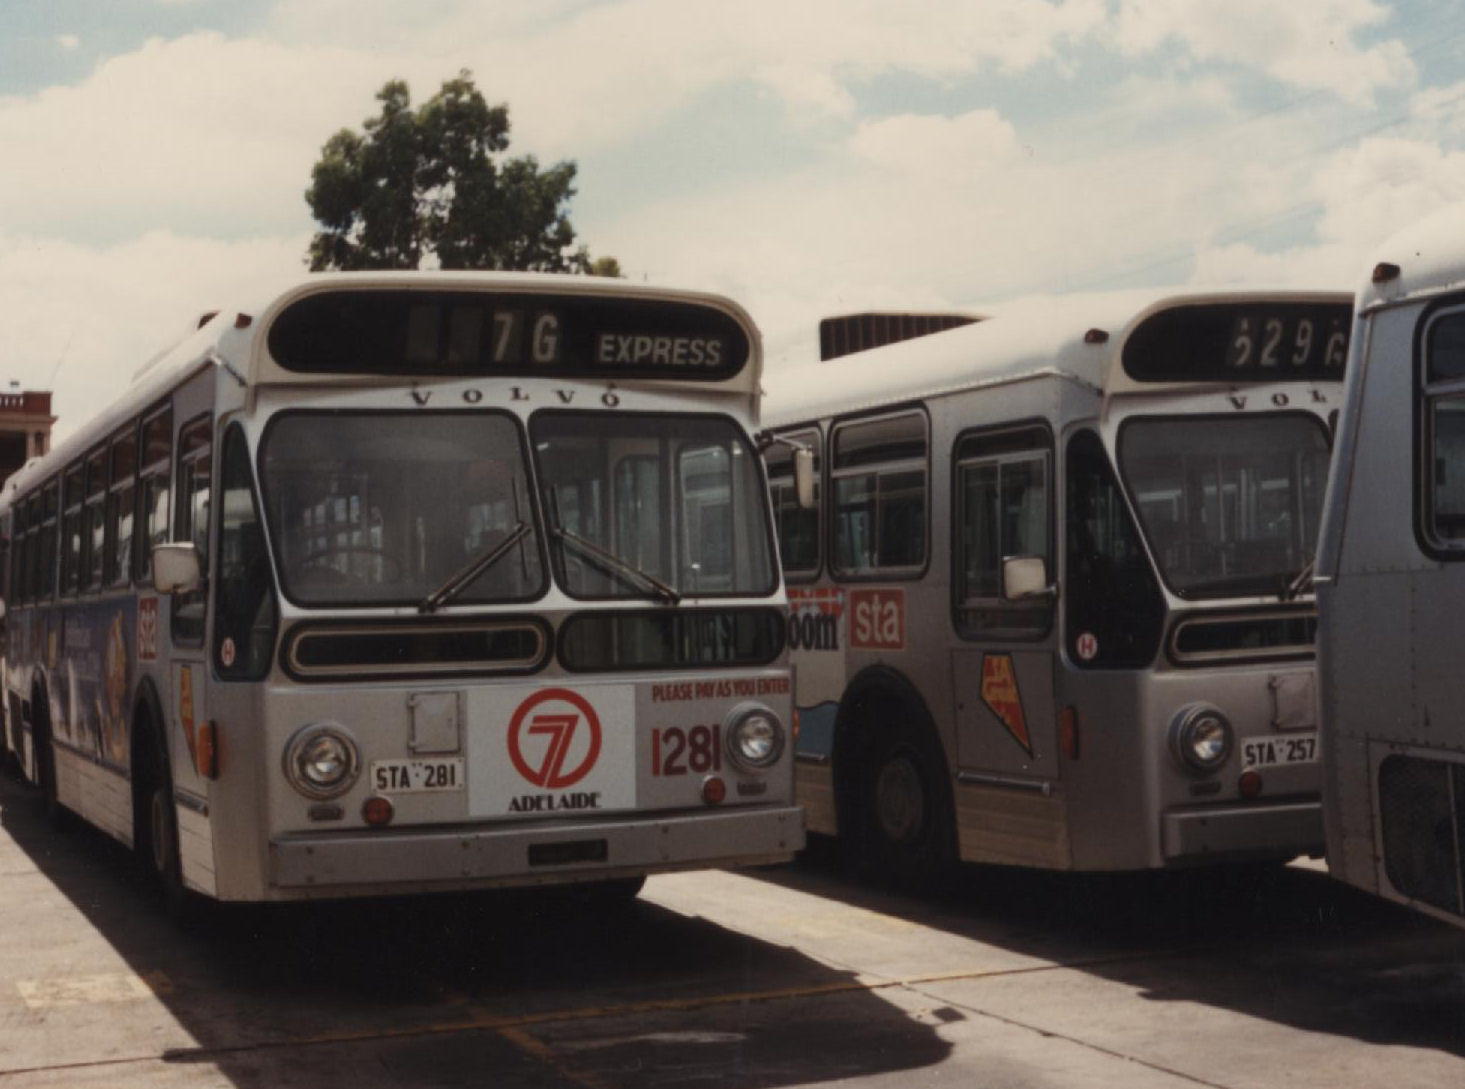 File:VolvoB59 1281 Route 7G Hackney.jpg